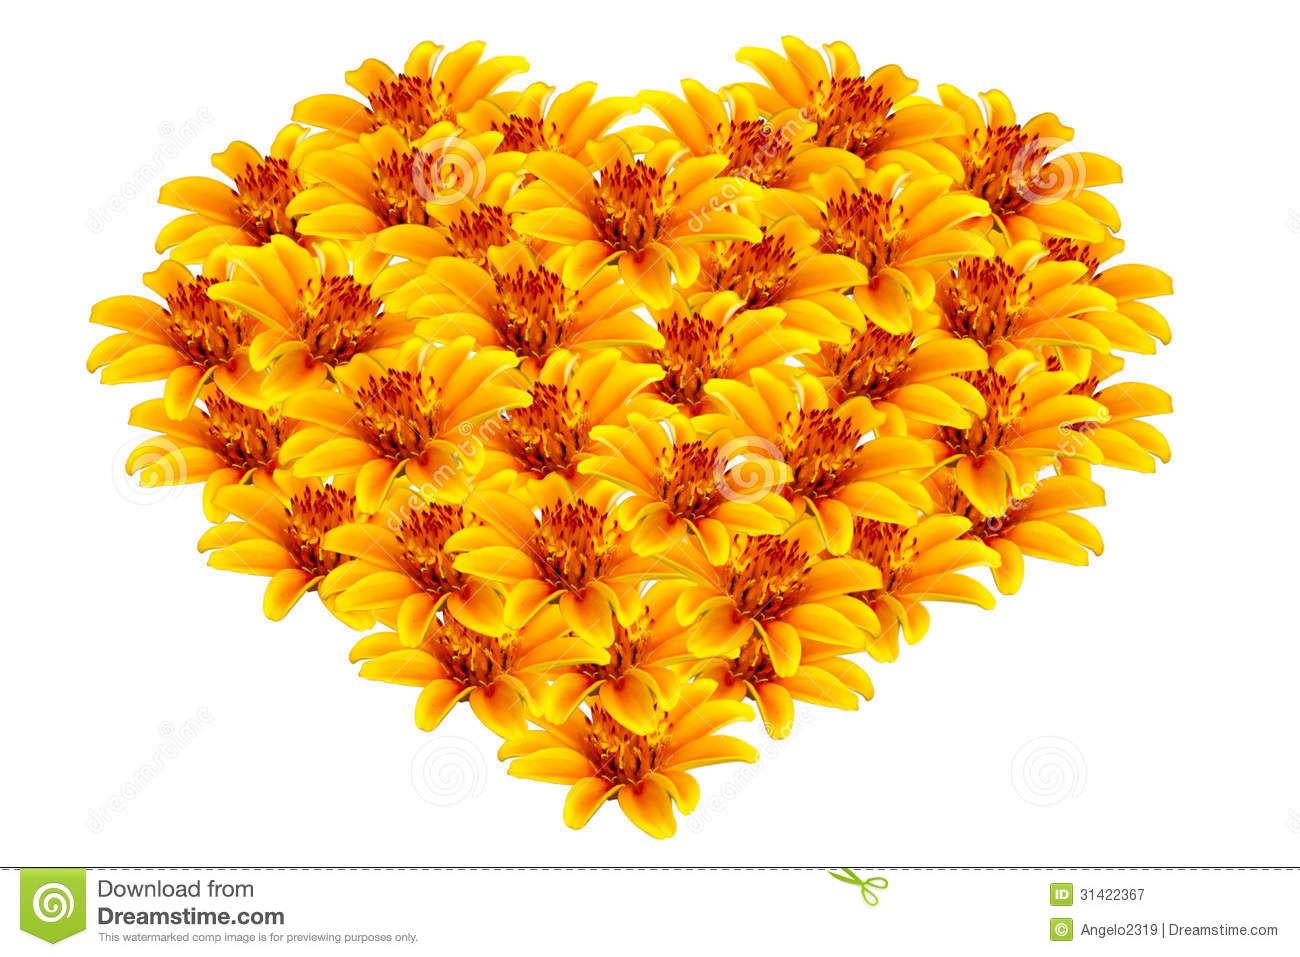 Beautiful yellow flowers heart shaped stock image image of beautiful yellow flowers heart shaped mightylinksfo